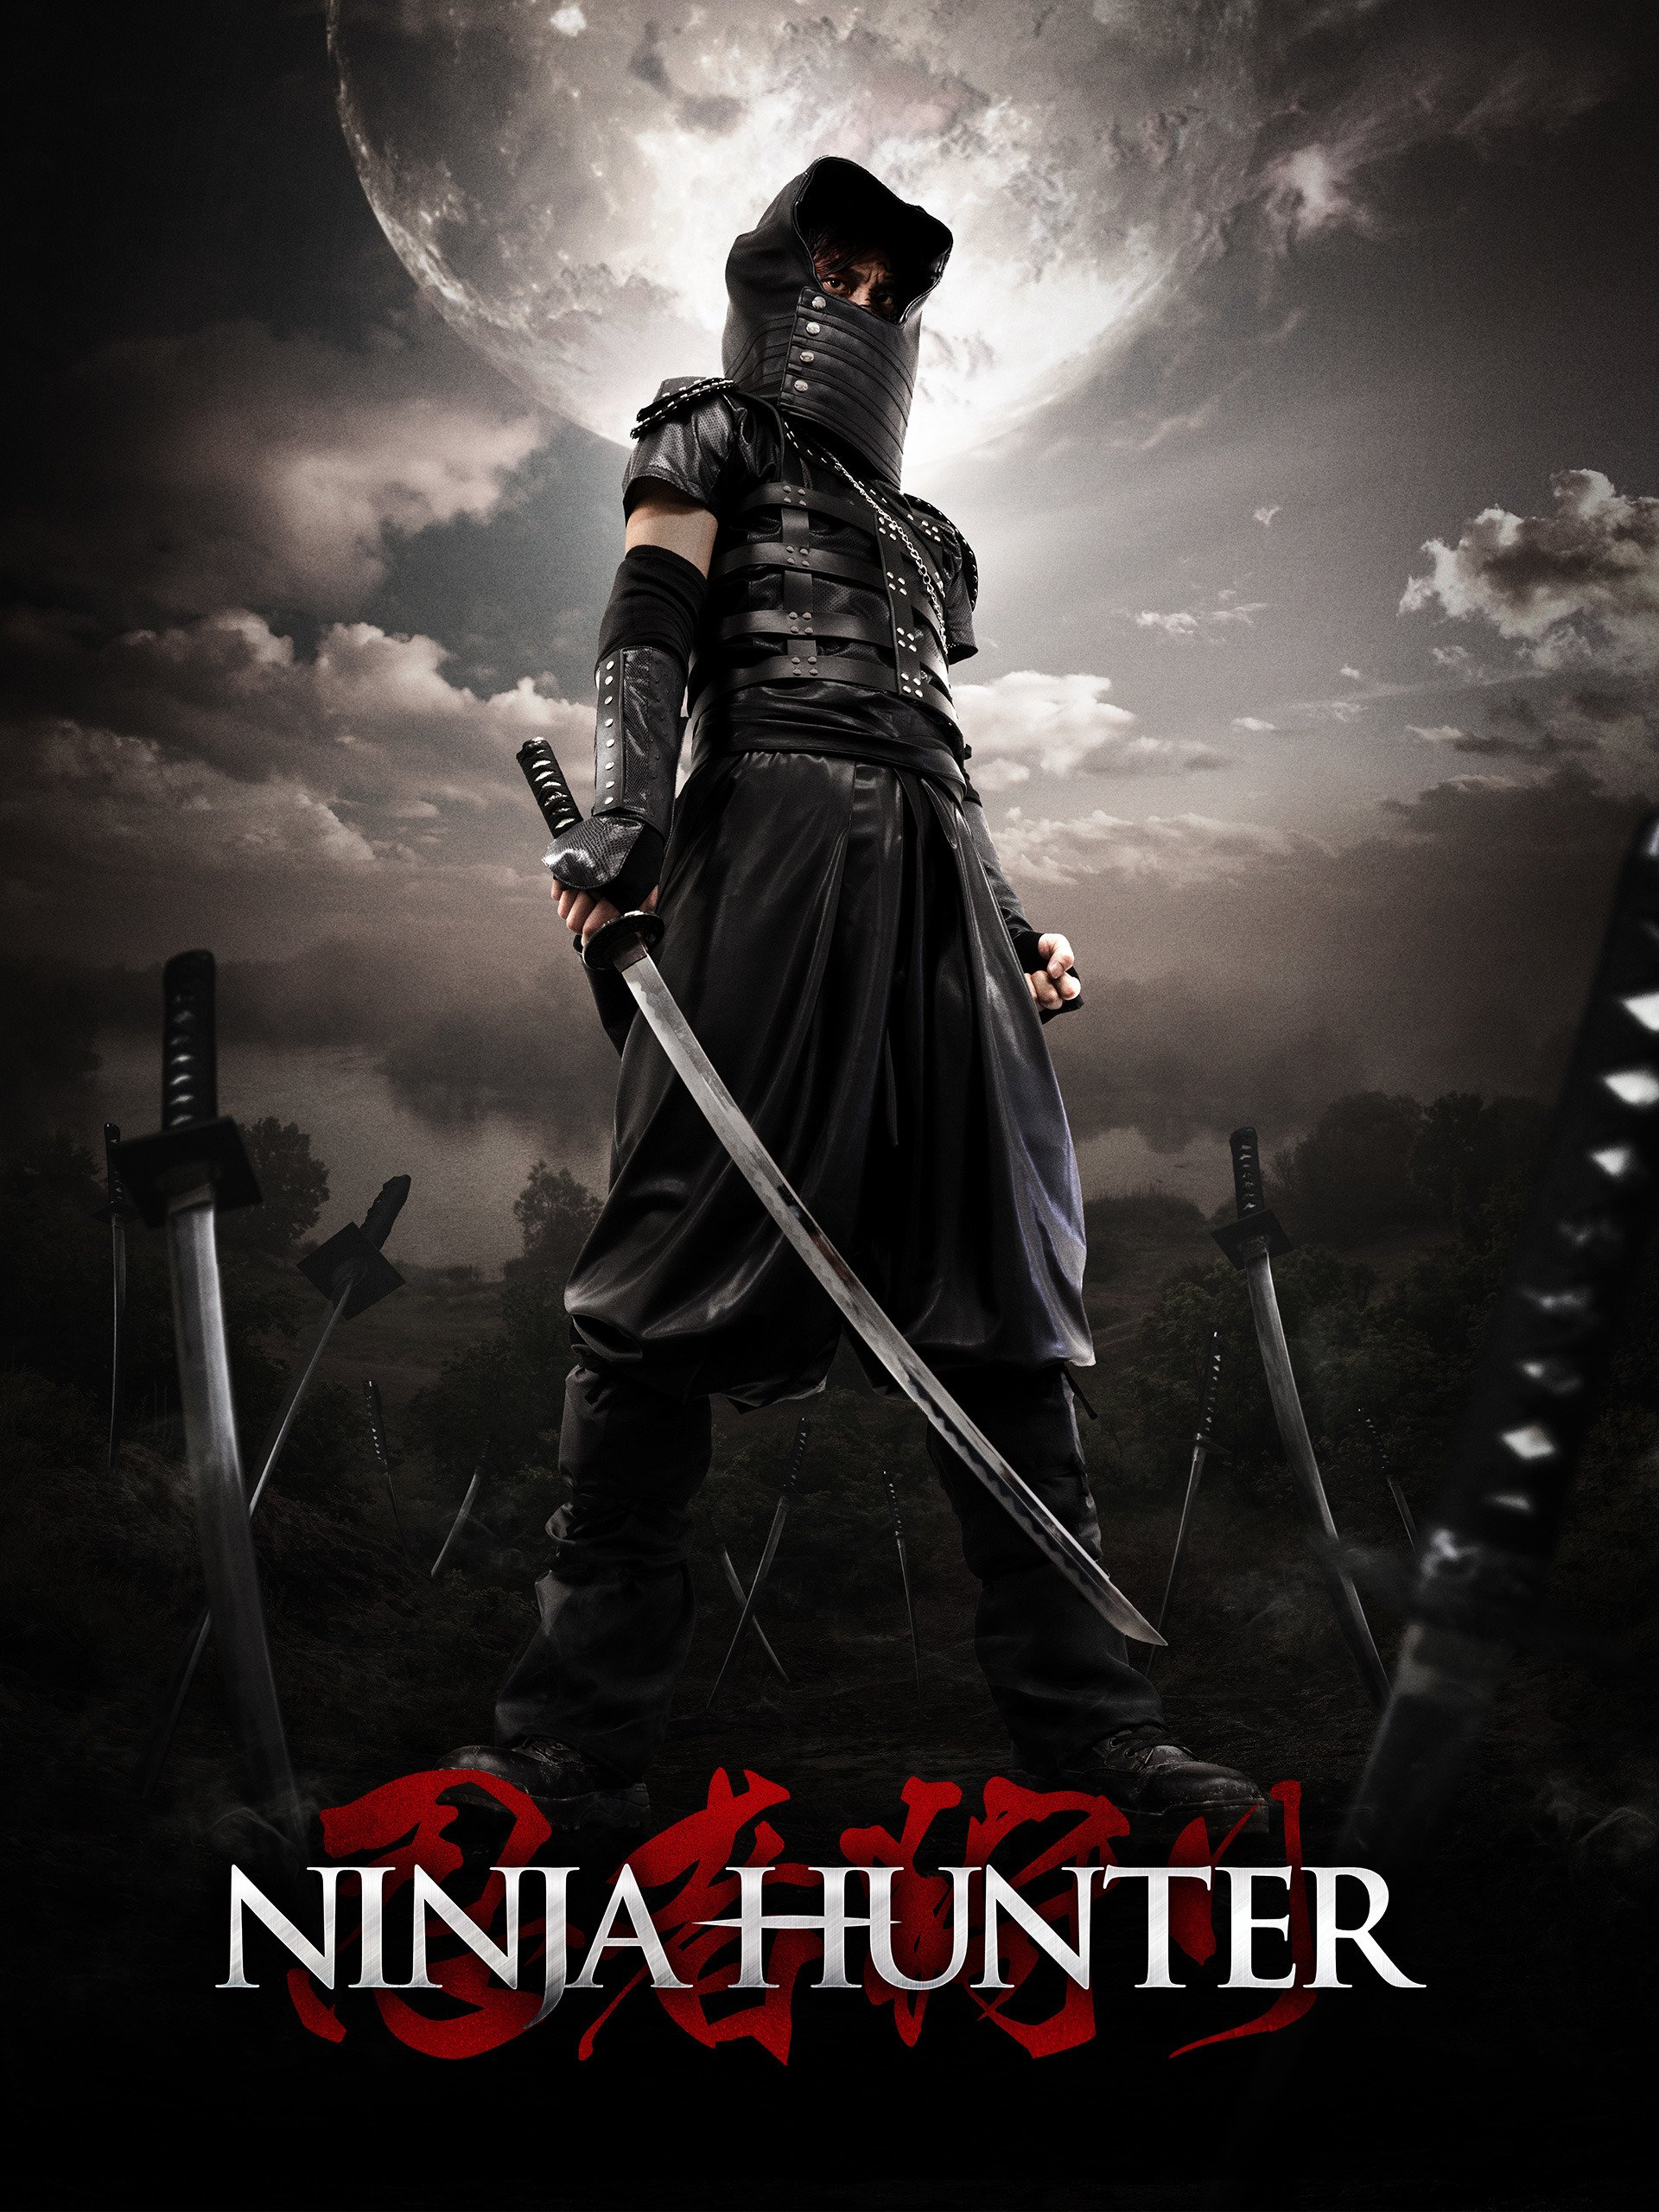 Watch Ninja Hunter (Original Japanese Version) | Prime Video